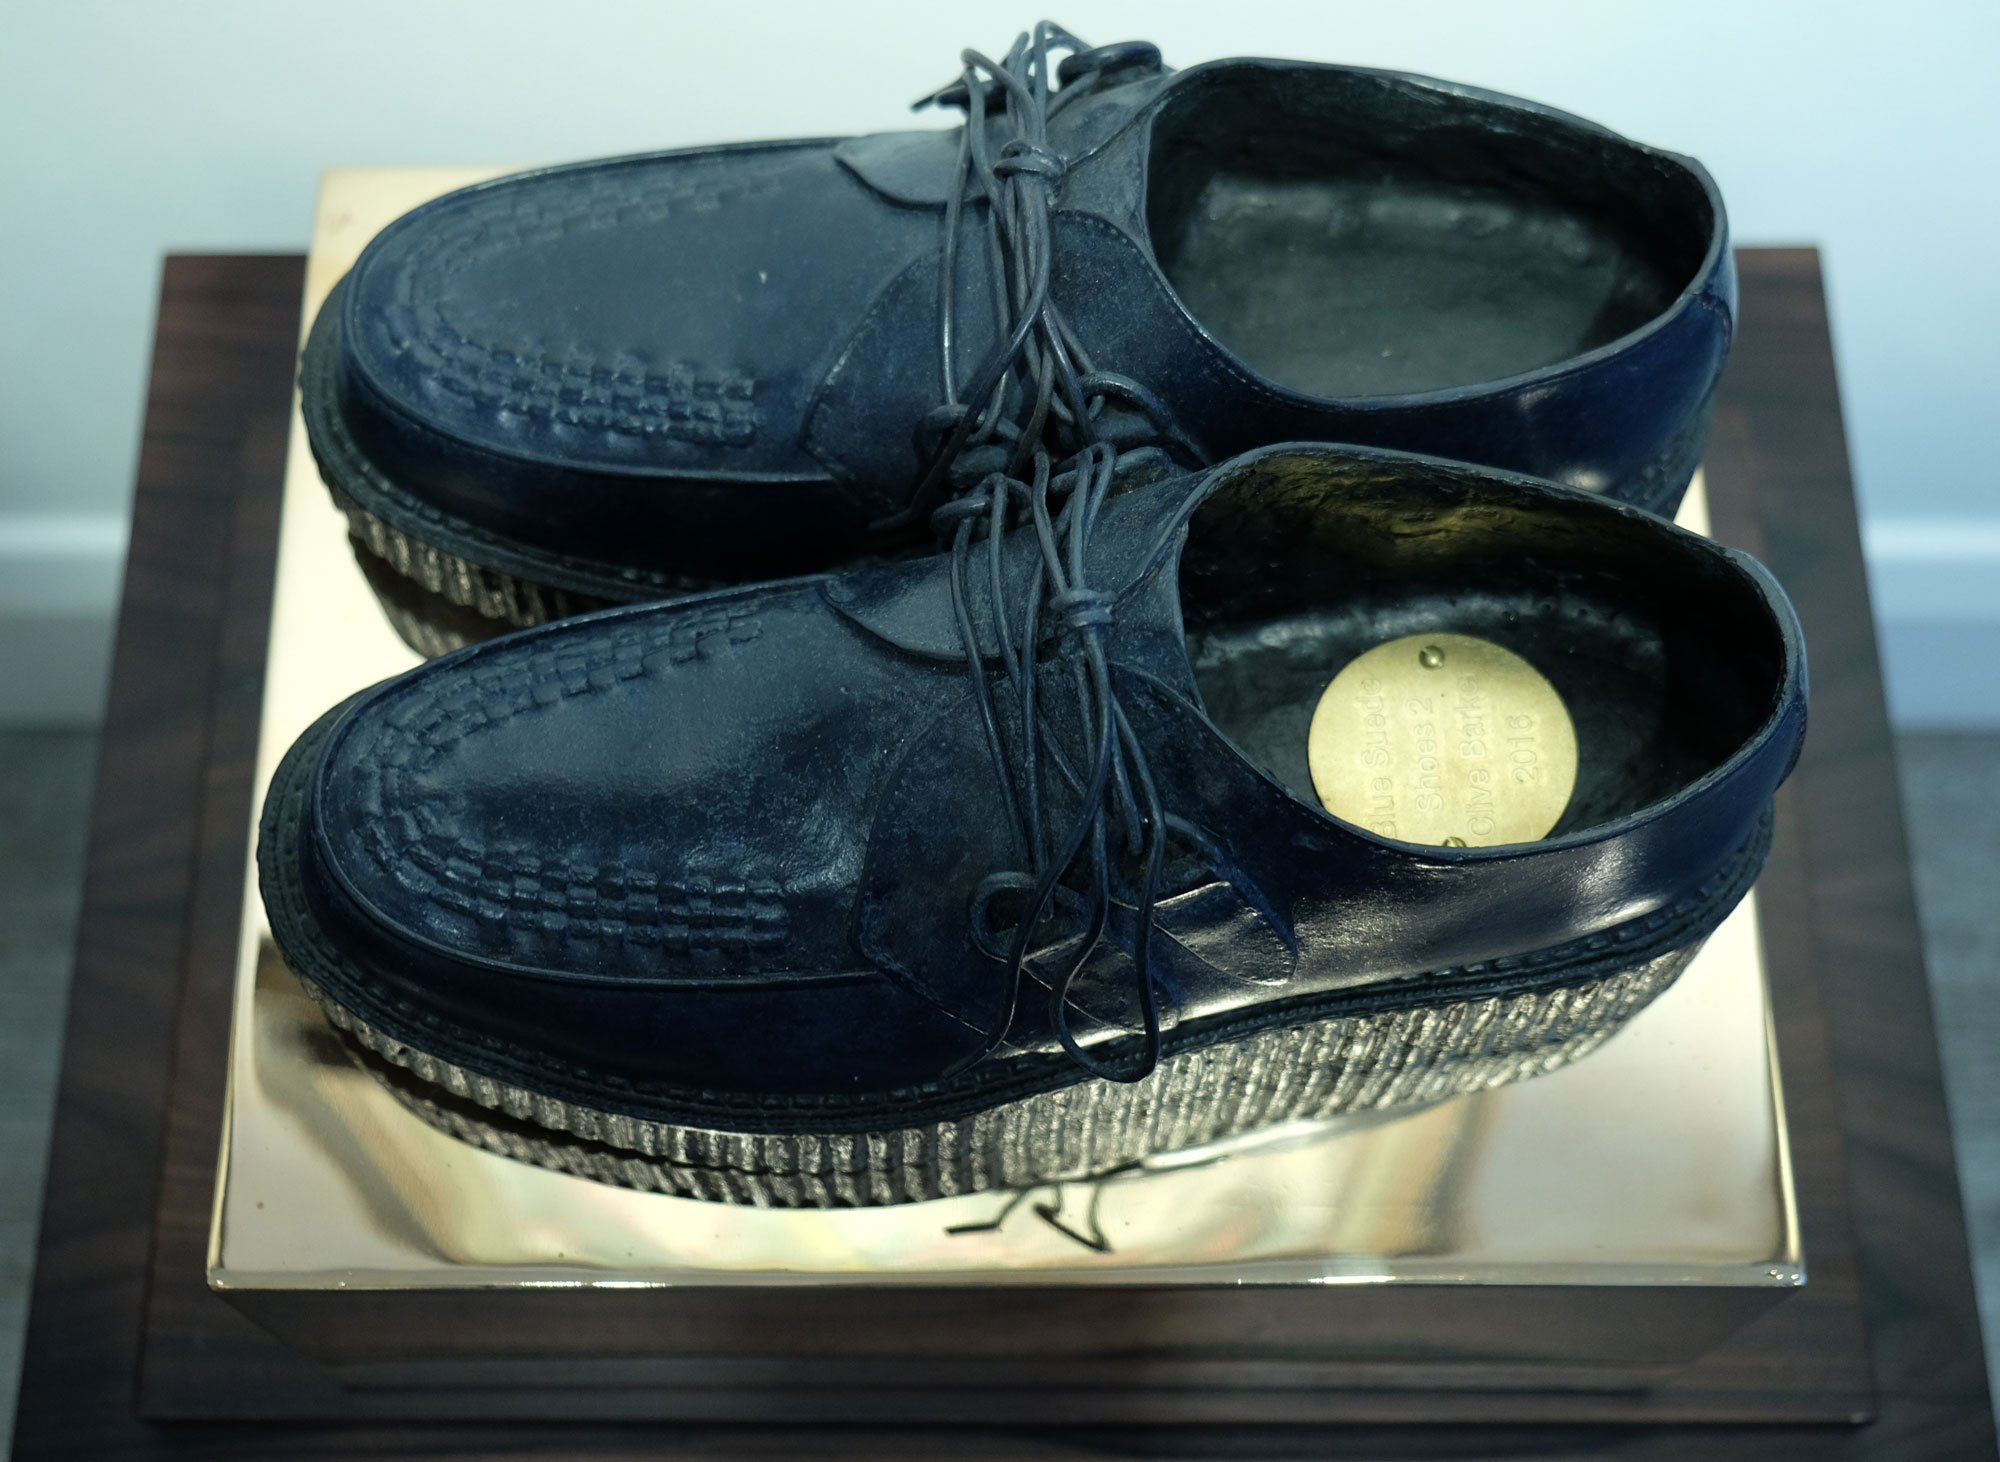 Clive Barker Blue Suede Shoes 2 I